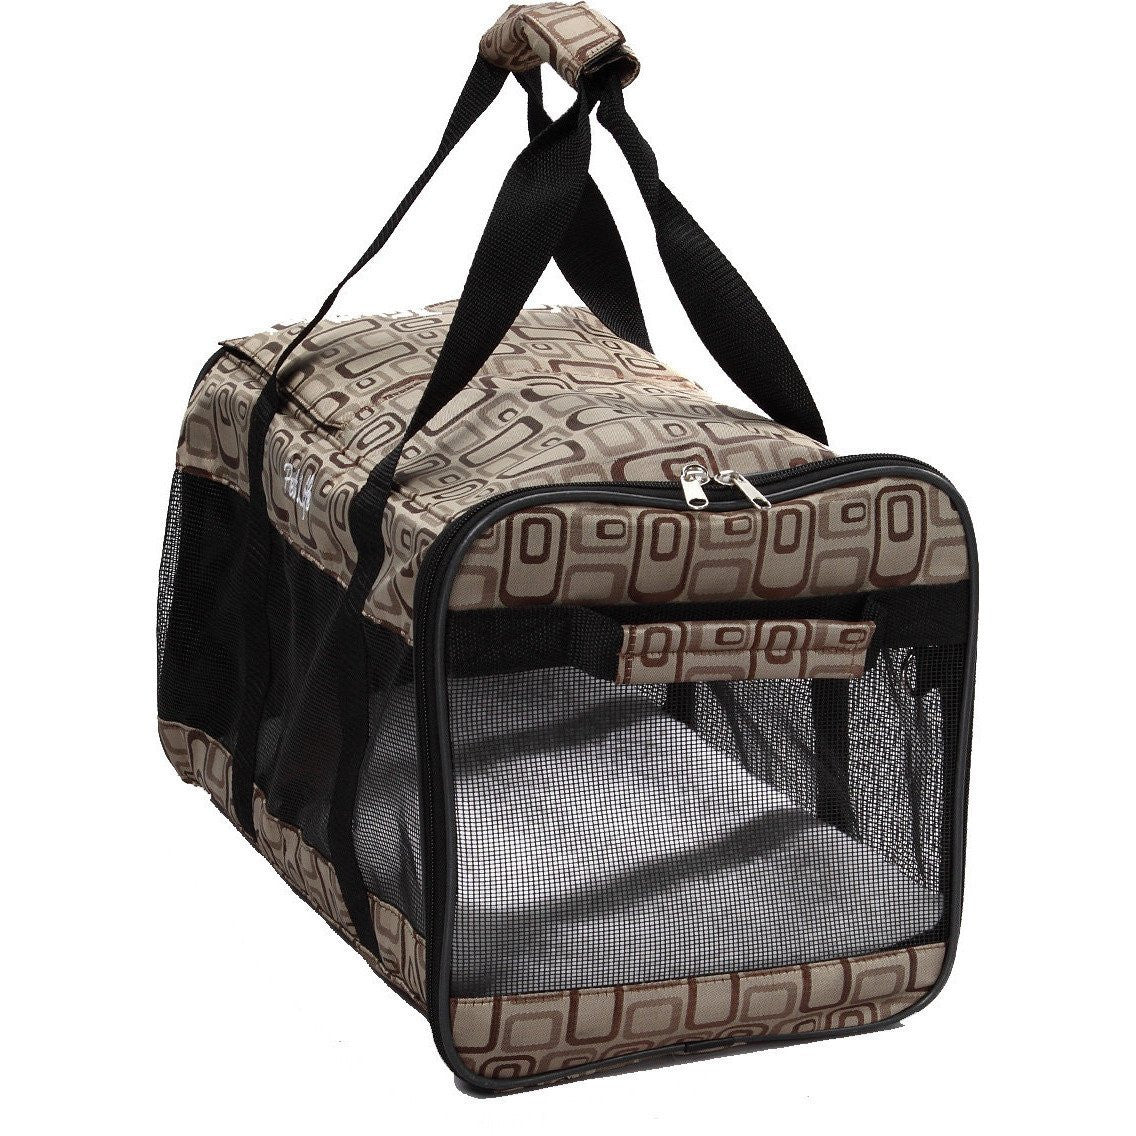 Airline Approved Pet Carrier - Jacquard Print